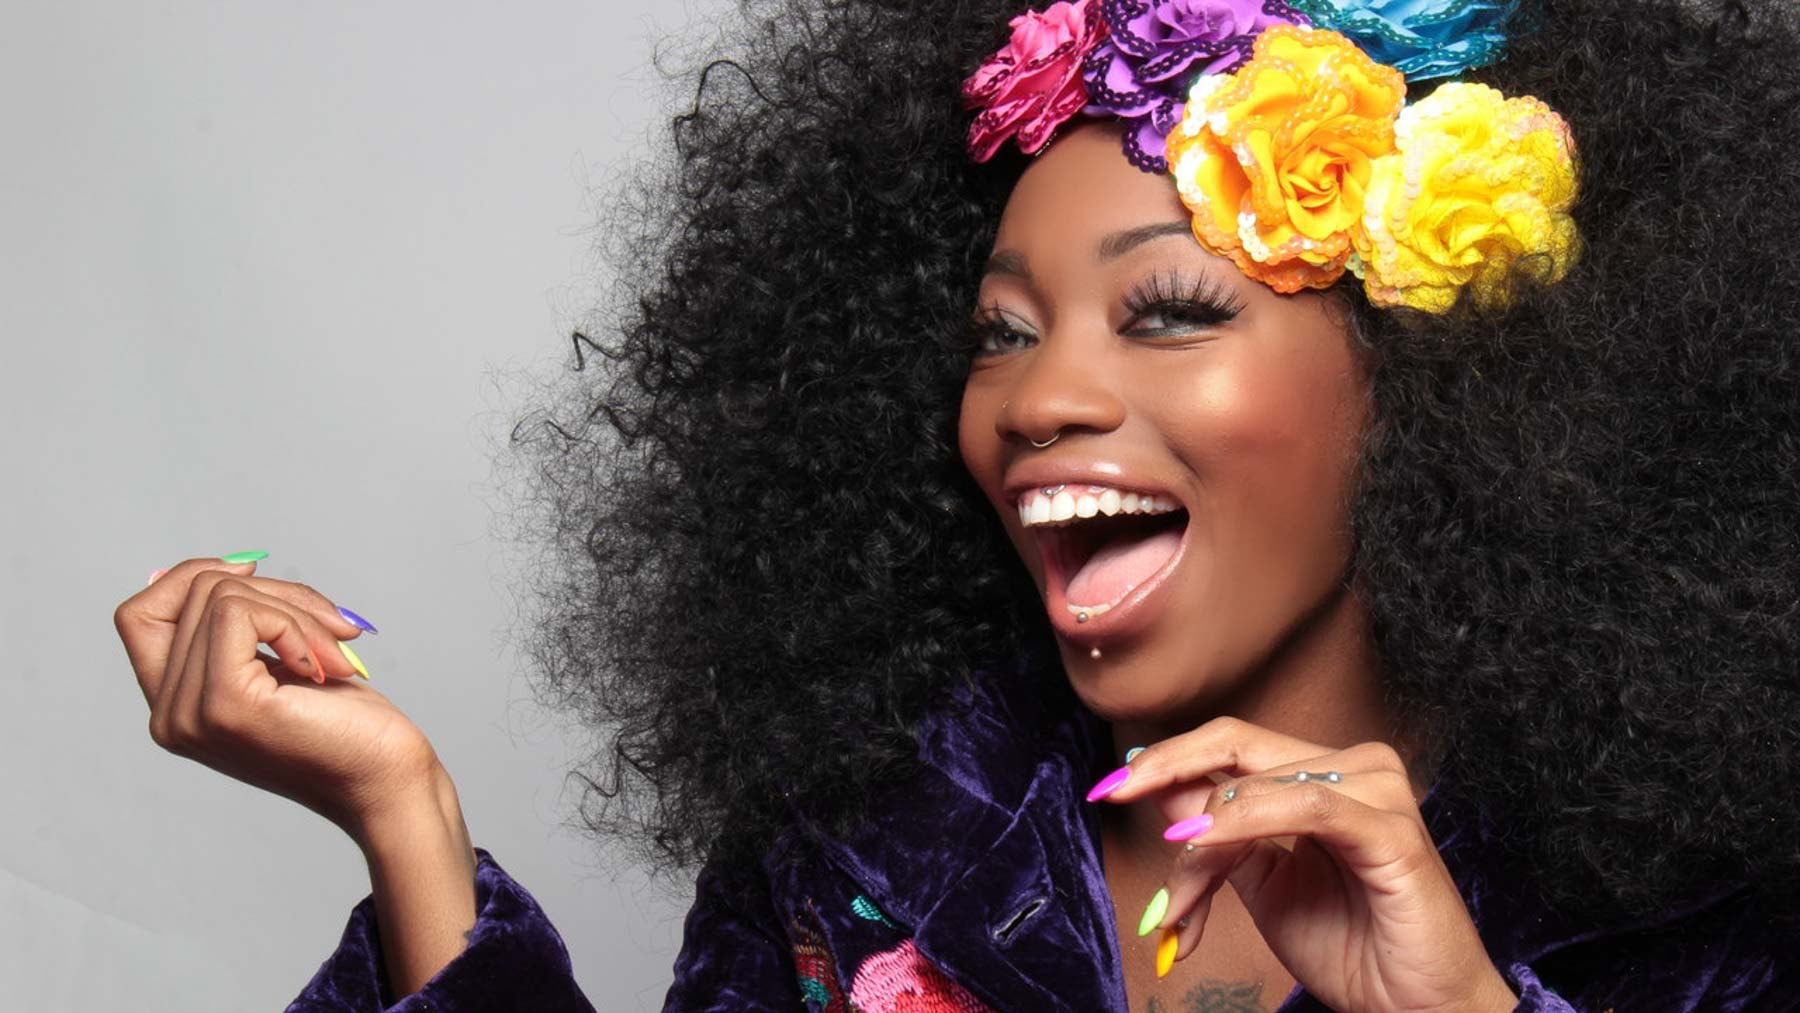 woman smiling confidently at the camera with bright flowers in her hair to represent sober confidence